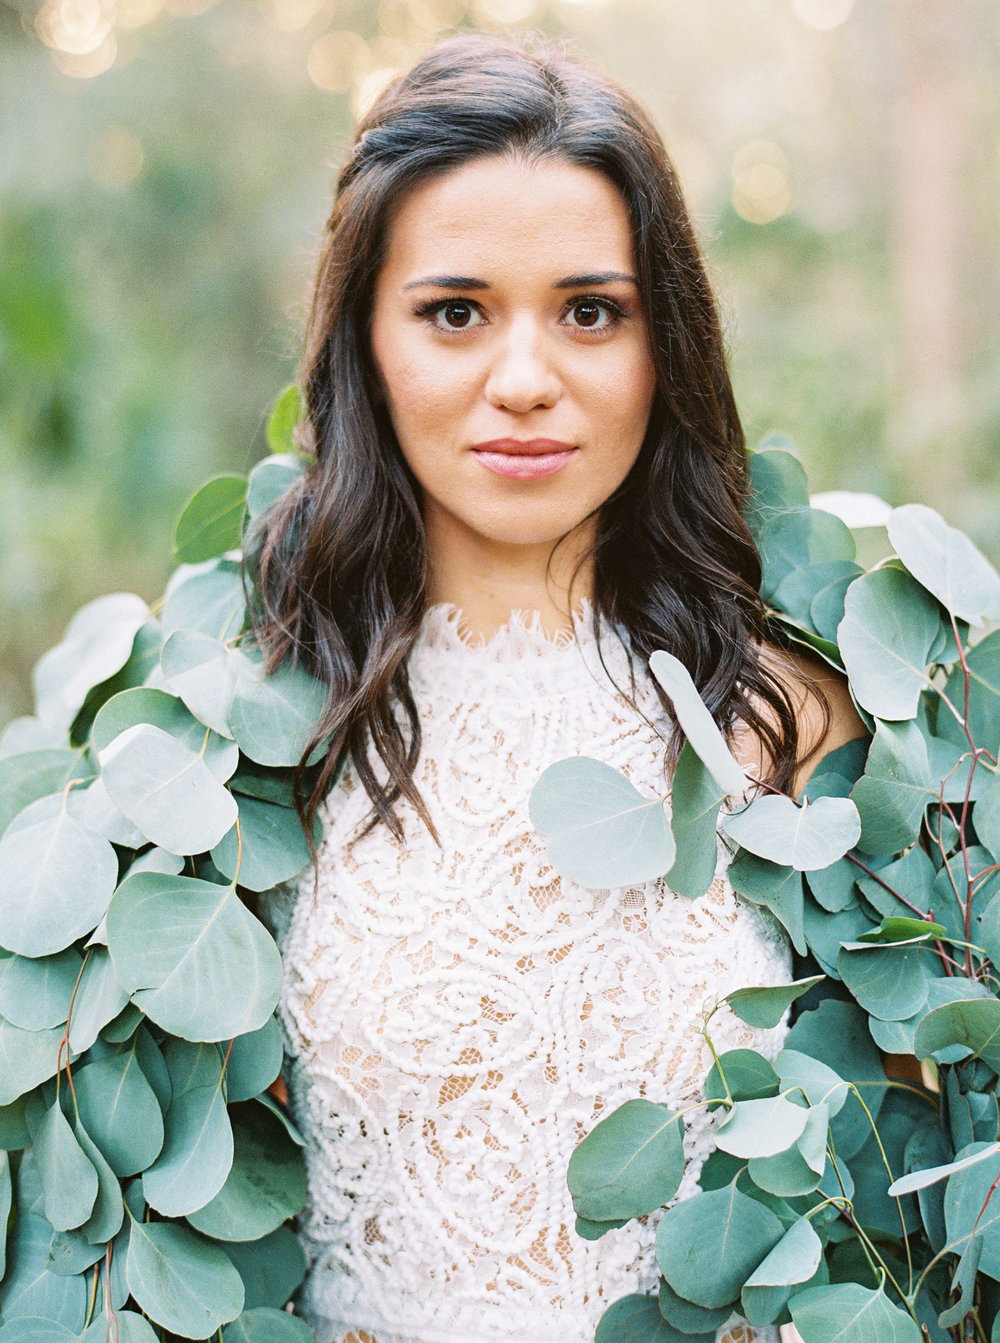 Bride holding eucalyptus garland instead of a bouquet. Floral styled shawl. Greenery garland used as floral shrug.